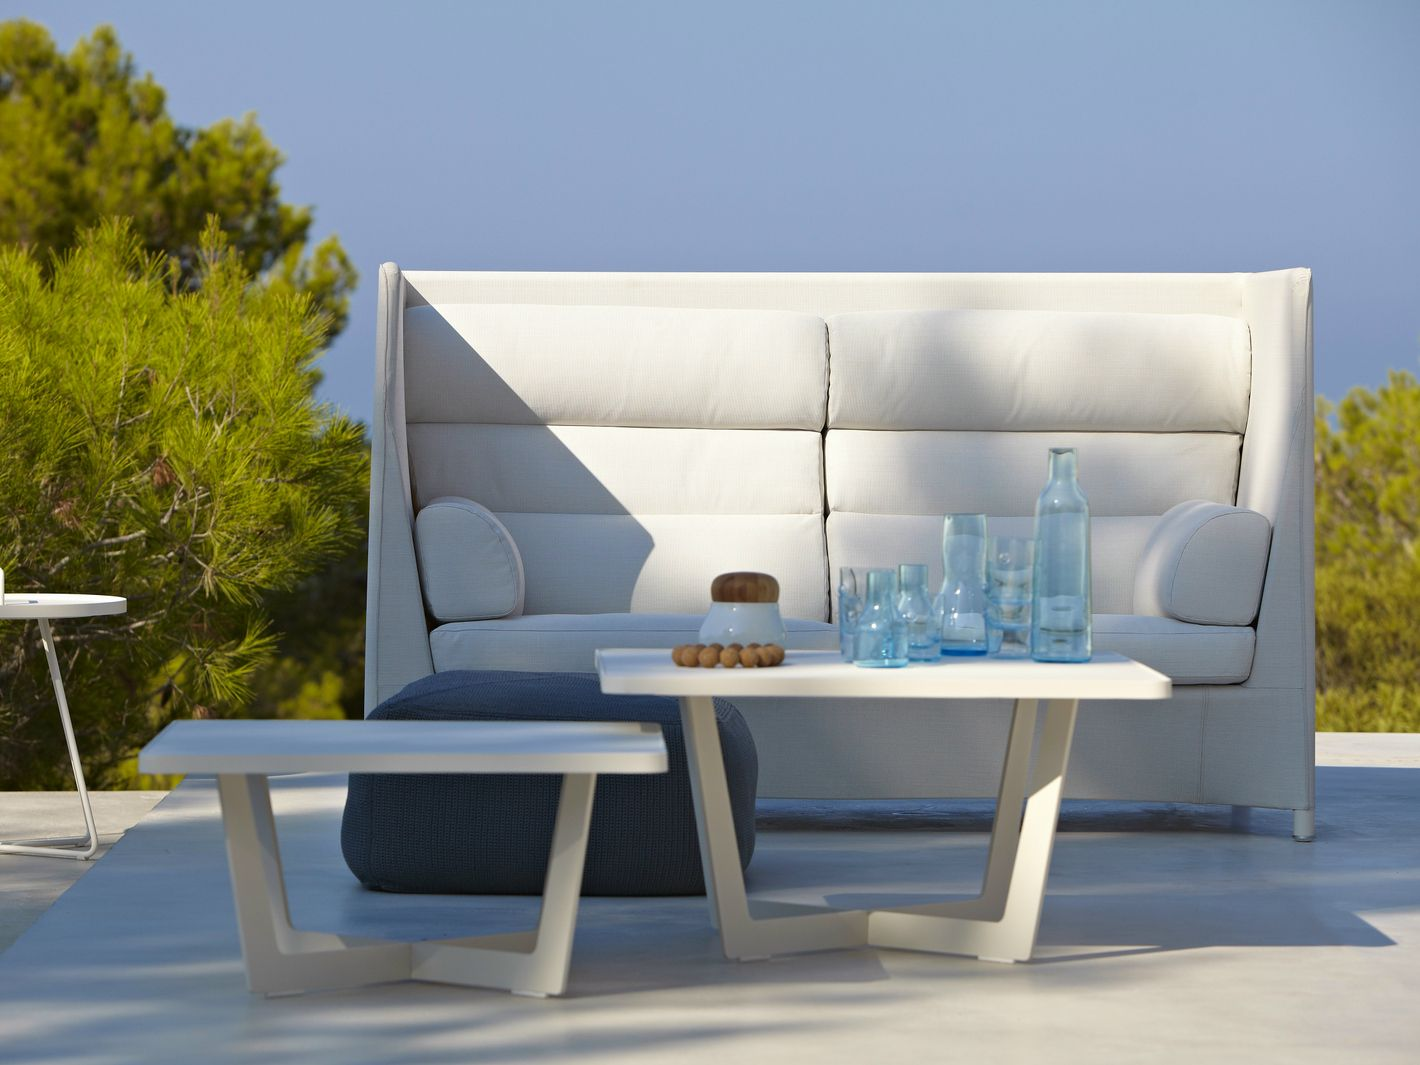 Garden Sofa Luxus Couch Coole Sofas Sofa